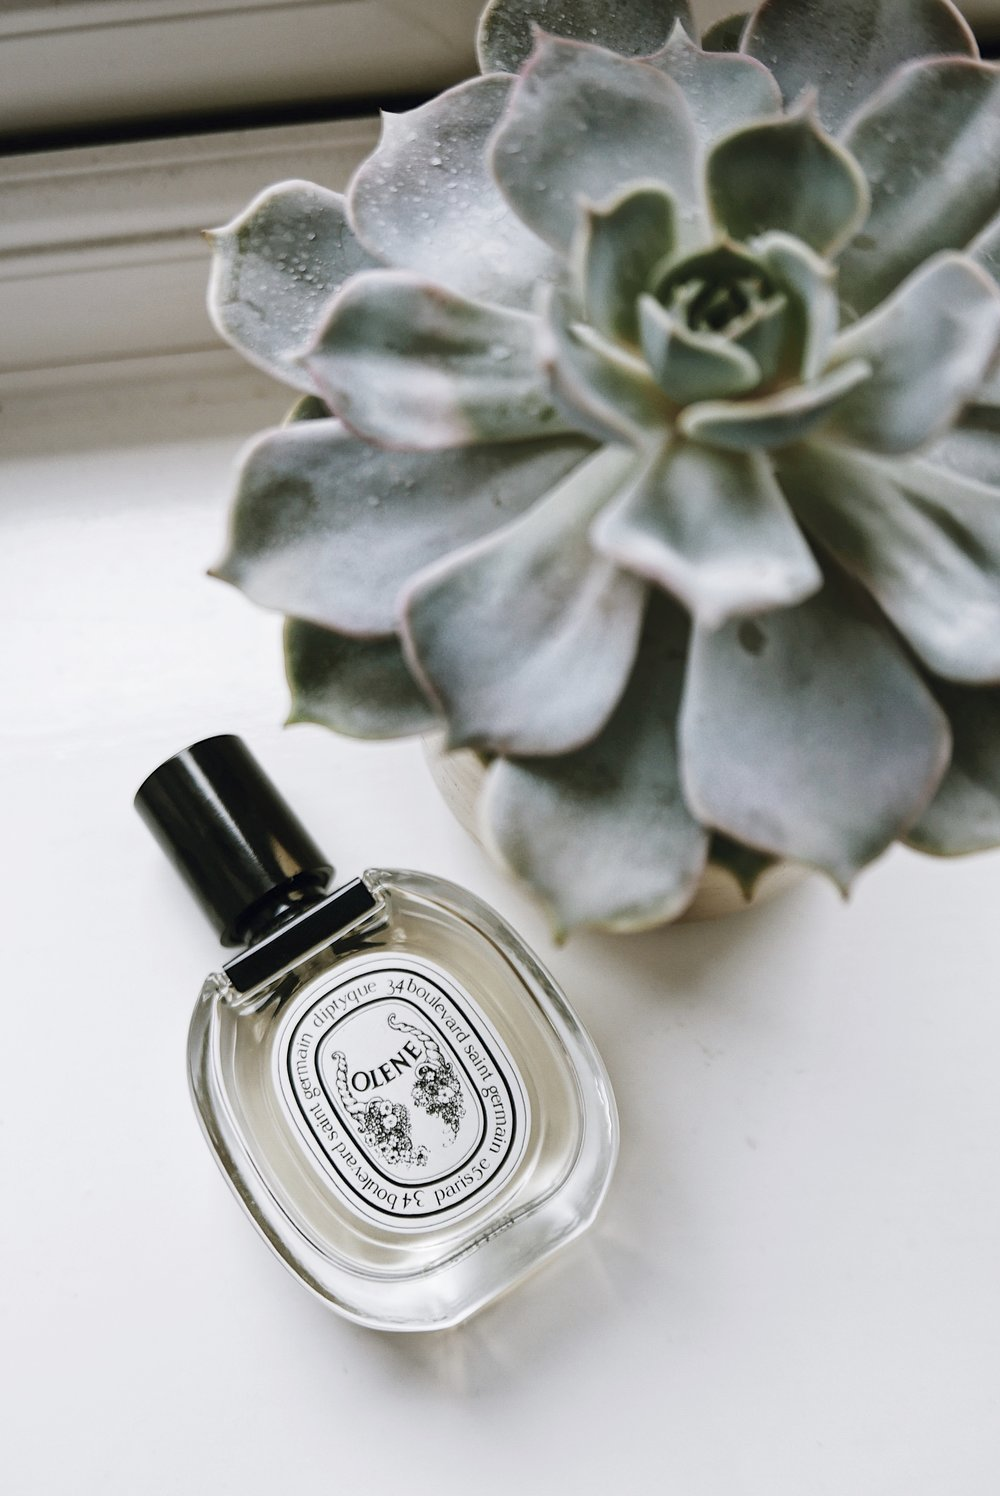 DIPTYQUE 'OLENE' - NOTES - JASMIN, WISTERIA, HONEYSUCKLE    I'm a sucker for anything with jasmin flower in it and this is one of my favourite scents with the flower. Jasmin to me reminds me so much of Thailand and the memories I have with the flower is what draws me to the scent. Thats actually what draws me to a scent - that it could take you back to a memory and respark your emotions. This Diptyque scent is an ode to the flower, making it very distinctive and I always get compliments every time I wear it. Diptyque Oleane available to by here